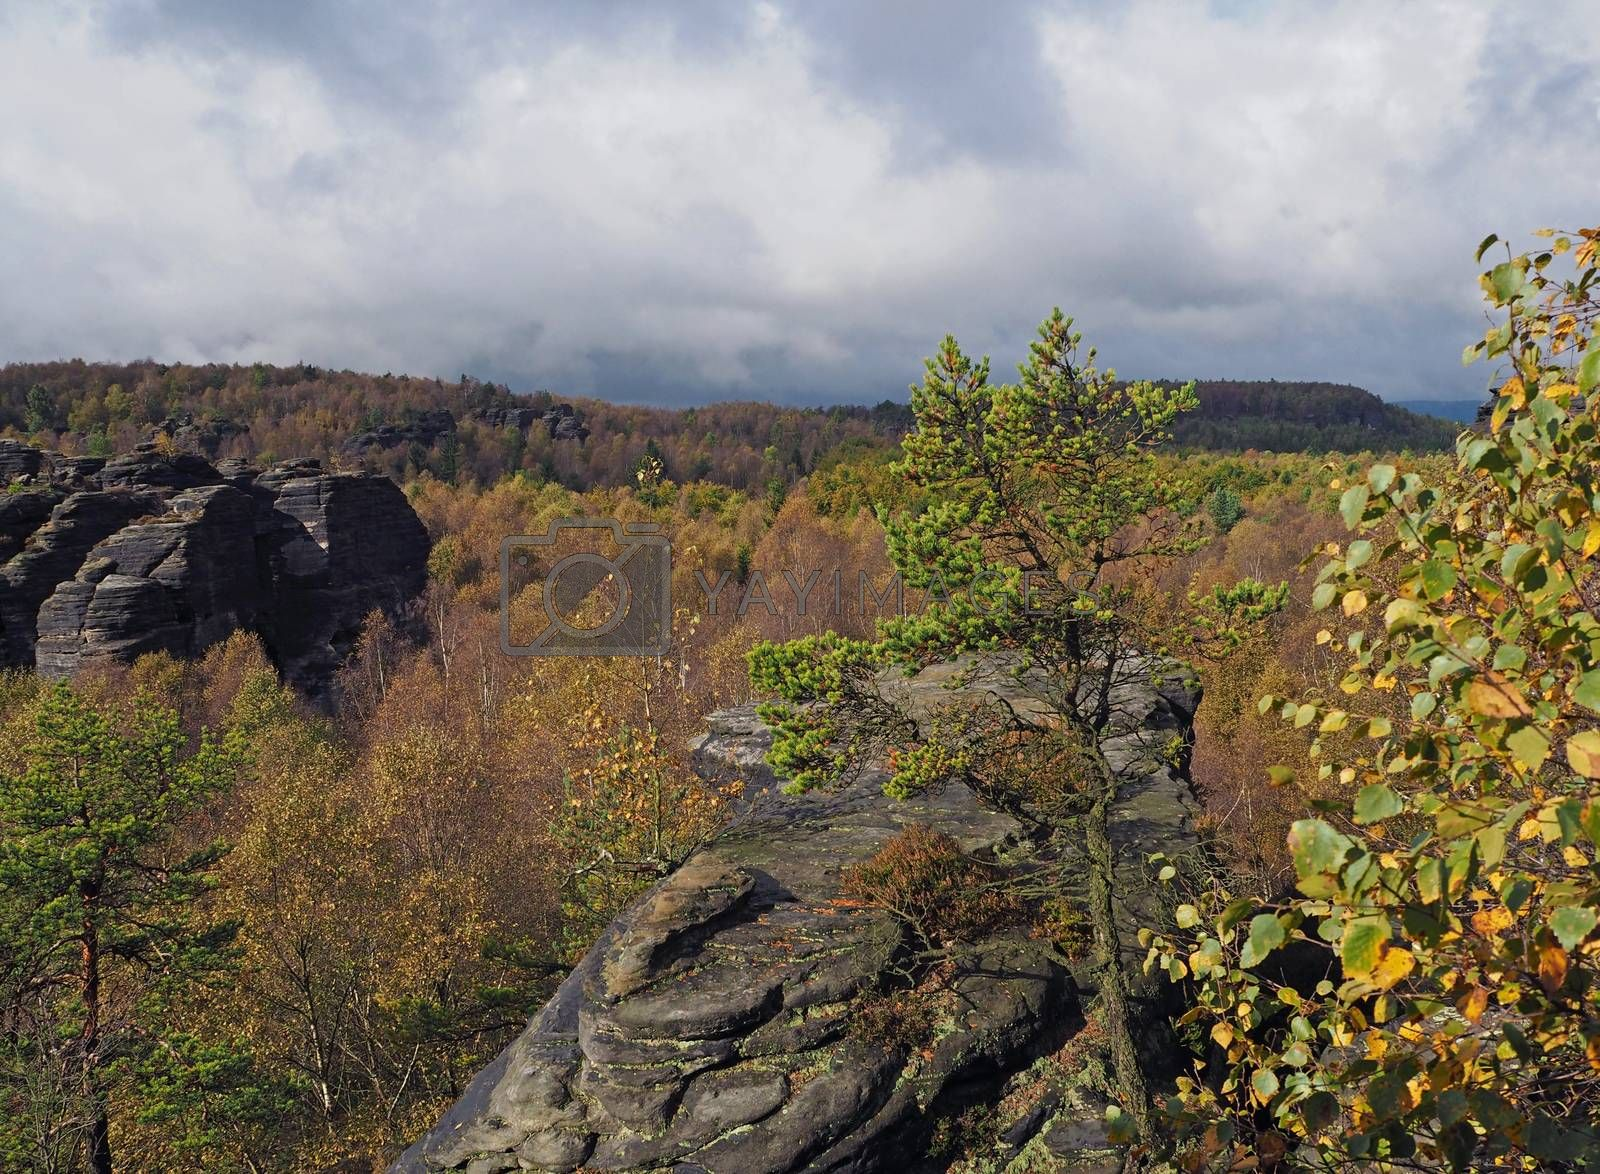 Autumn landscape in czech Switzerland national park with sandstone slopes and forest